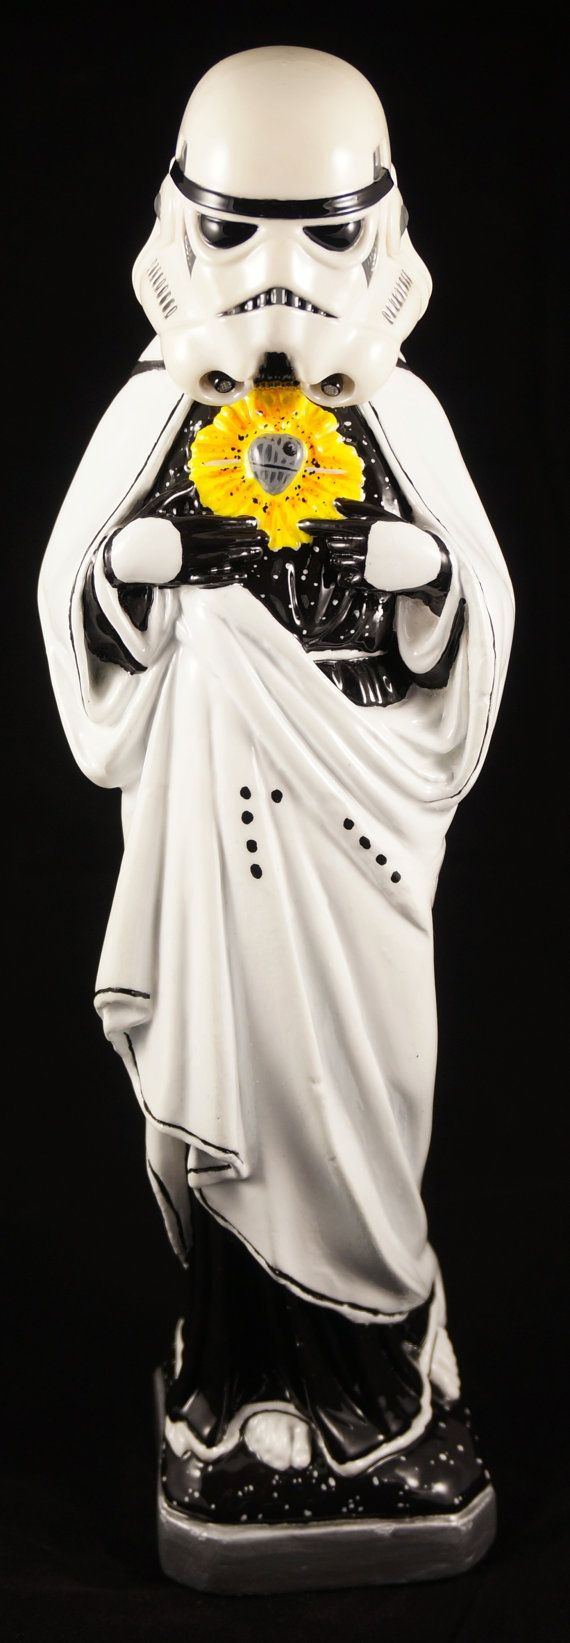 Hand Painted Virgin Mary as Stormtrooper statue. Exploding Death Star sacred heart. Legit Helmet. It has been clear coated so its nice and glossy. The